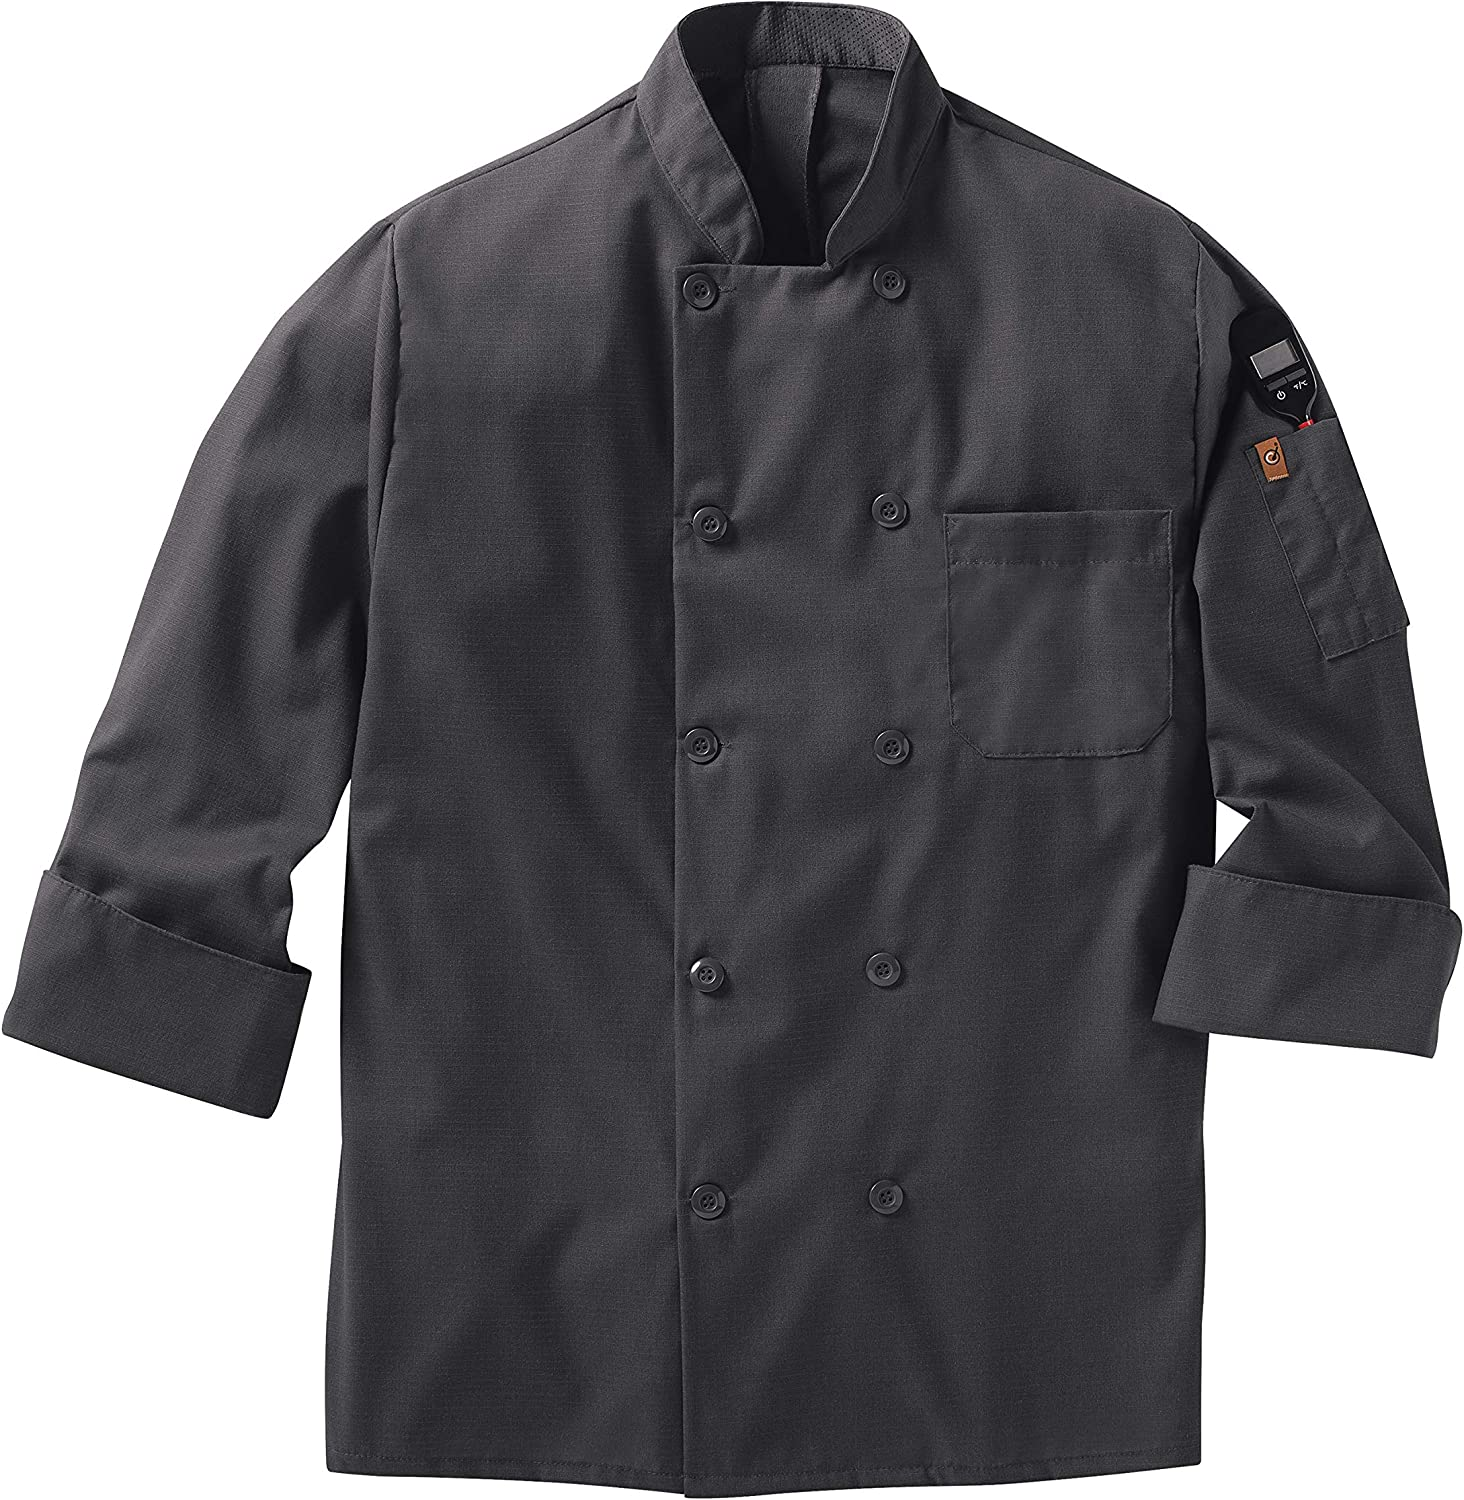 Red Kap Men's Long Sleeve Ten Button Chef Coat with Mimix and Oilblok